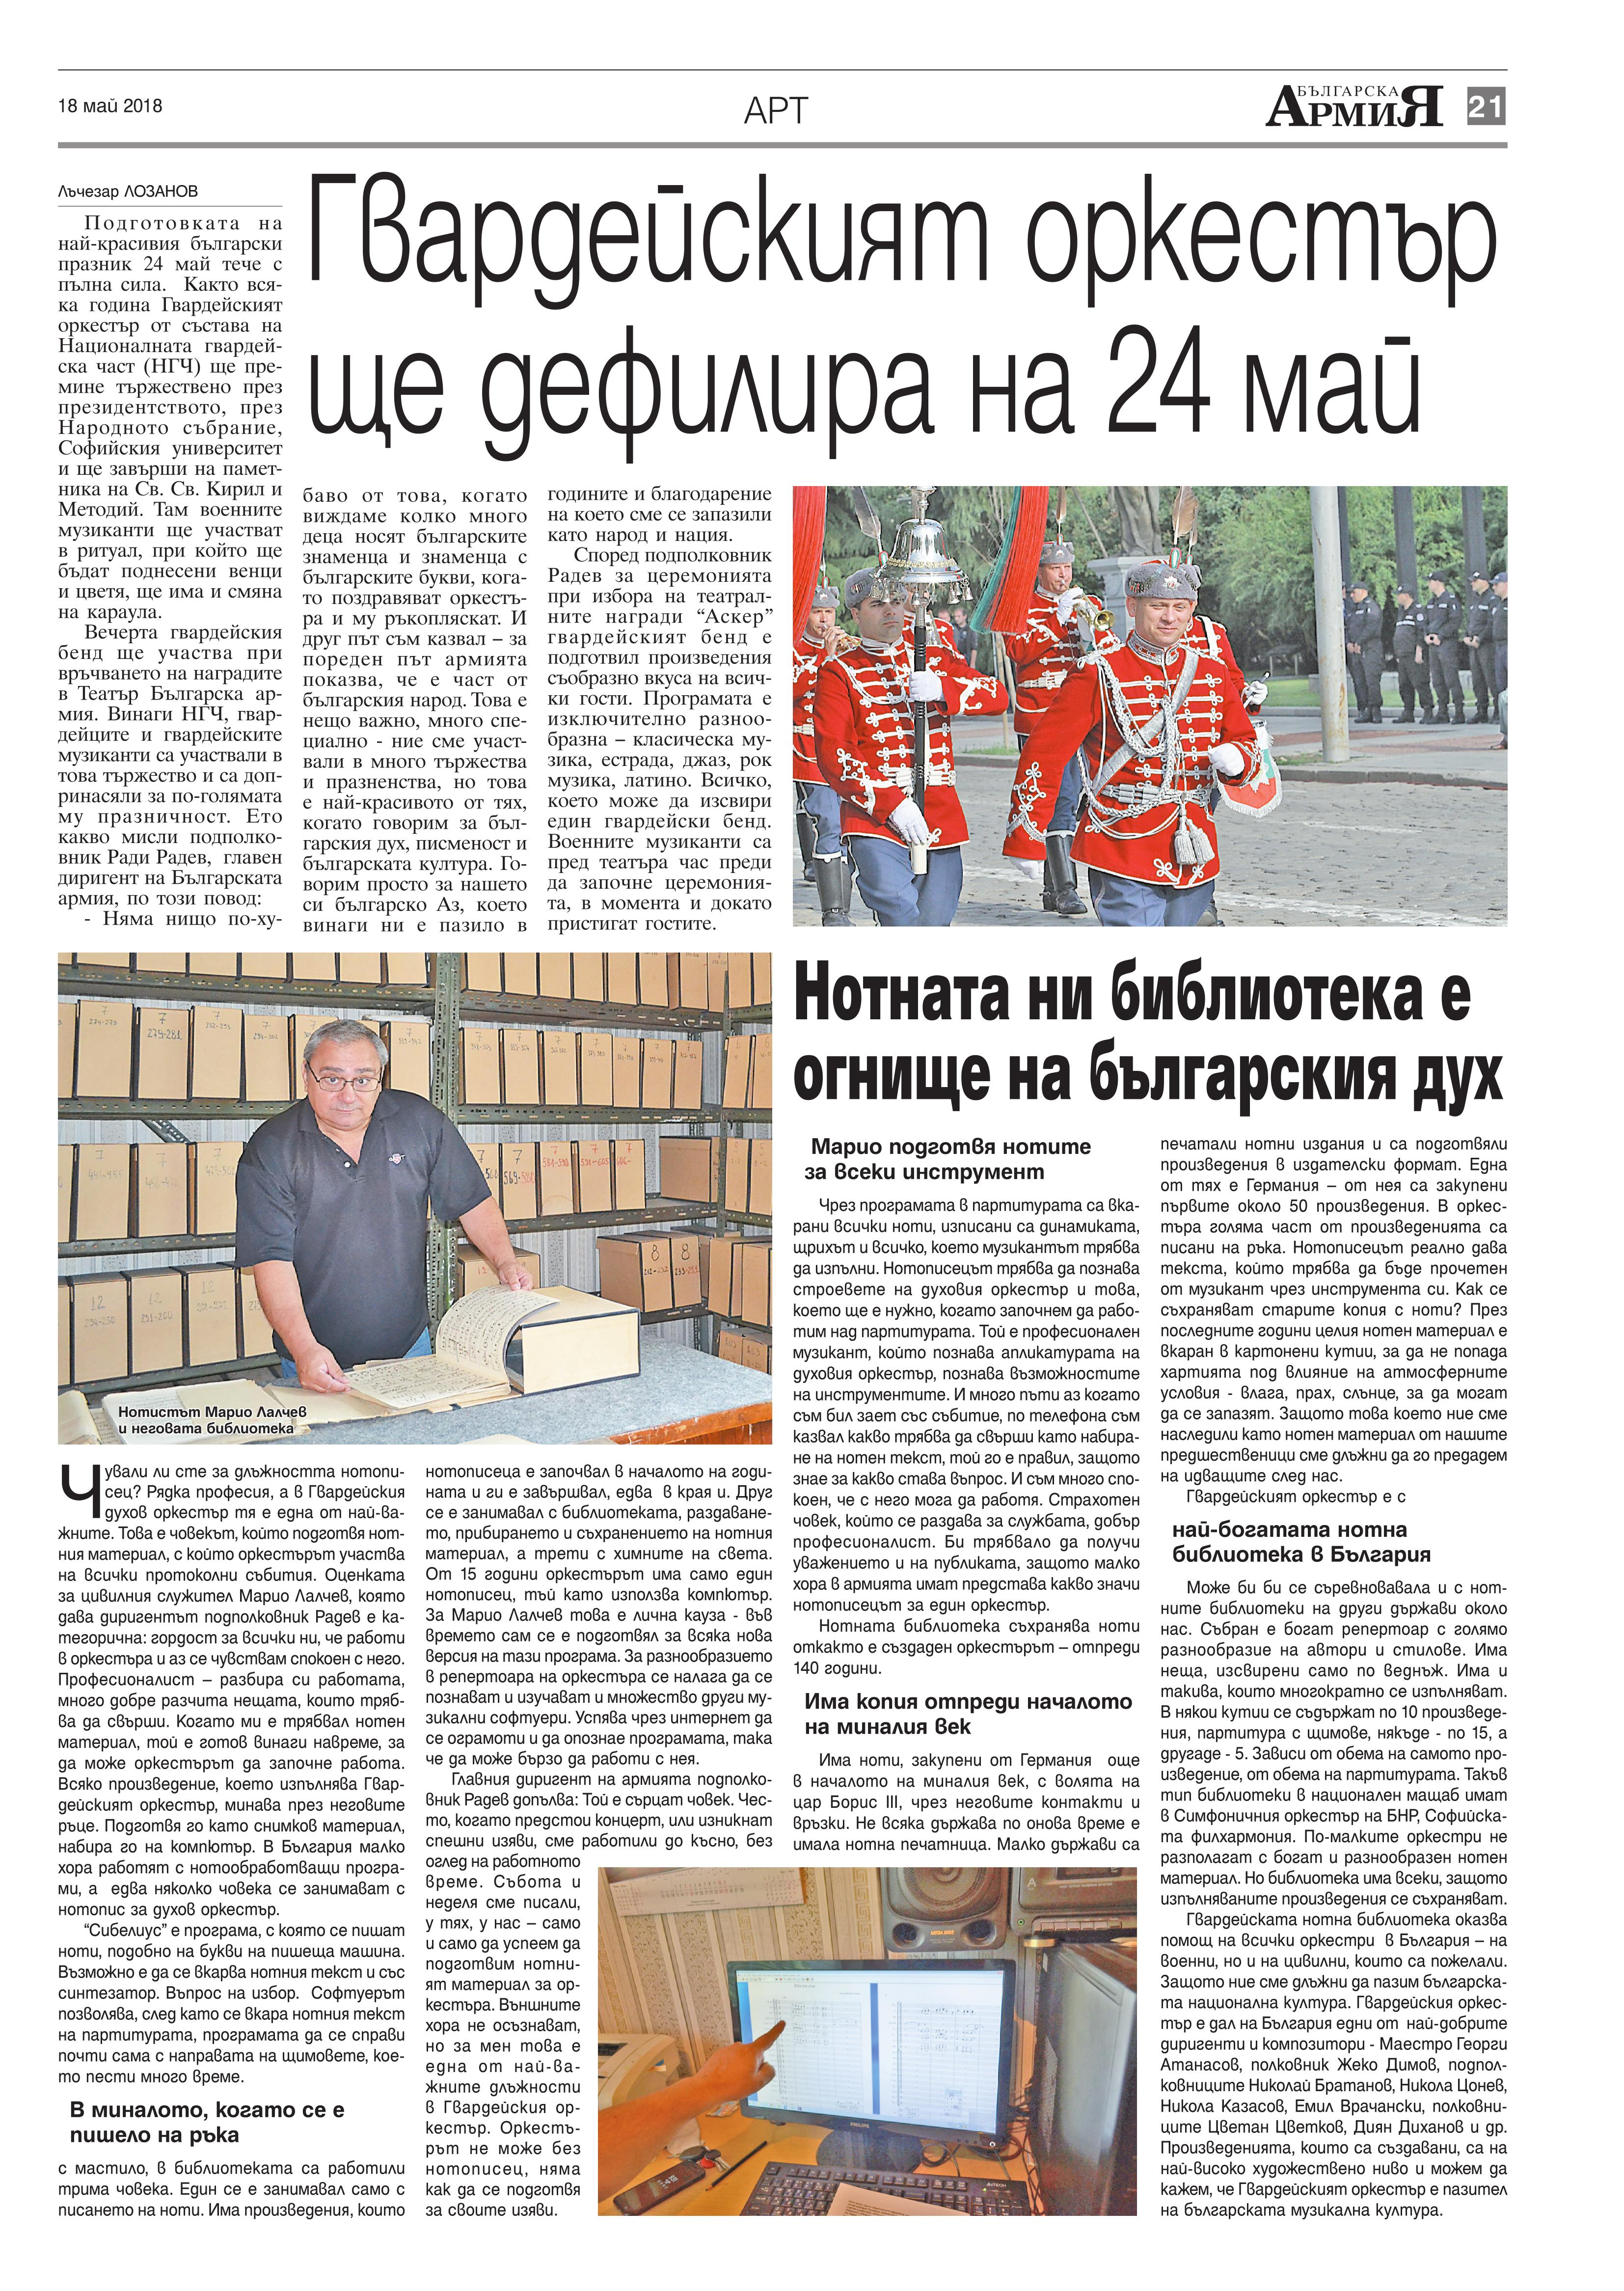 http://armymedia.bg/wp-content/uploads/2015/06/21.page1_-51.jpg